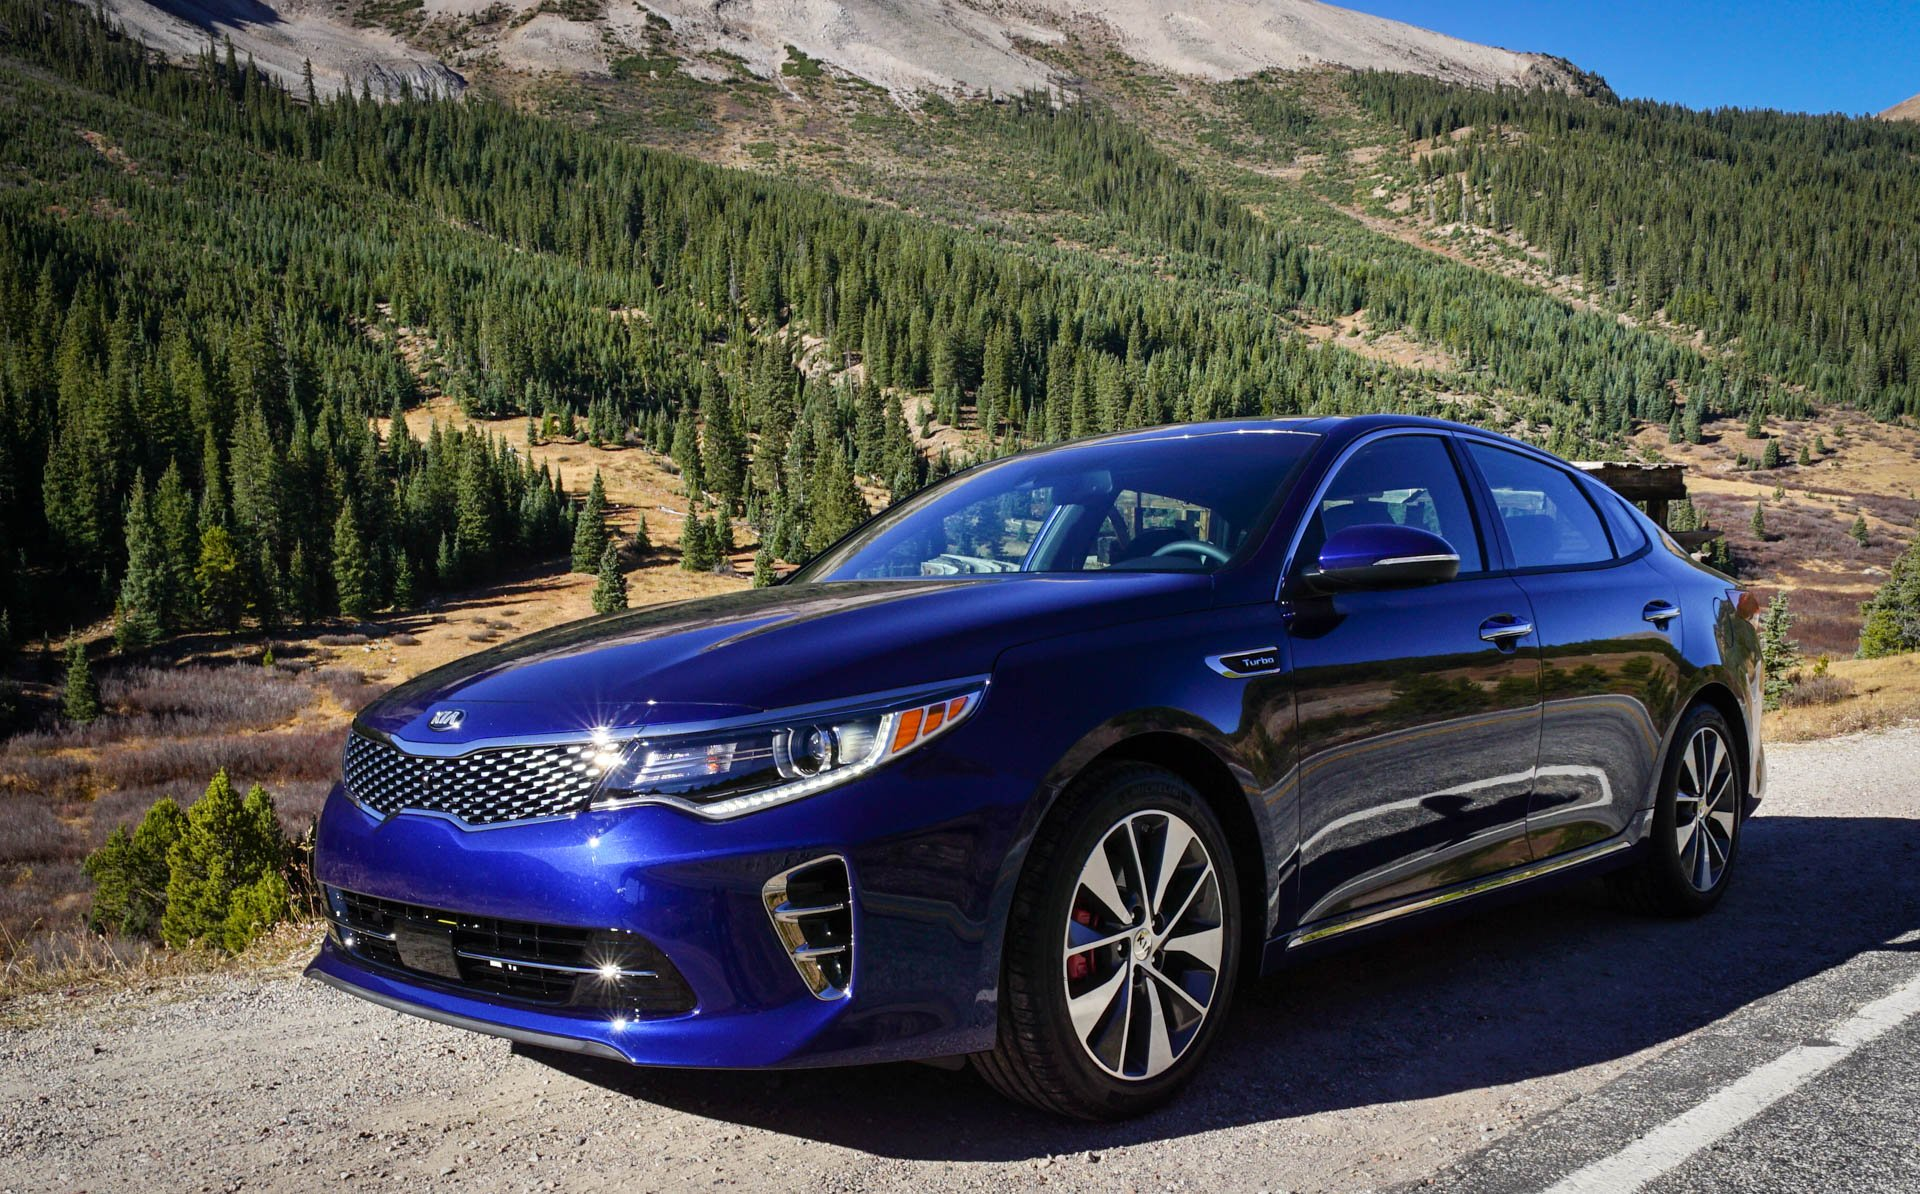 first drive review 2016 kia optima sxl 2 0t 95 octane. Black Bedroom Furniture Sets. Home Design Ideas